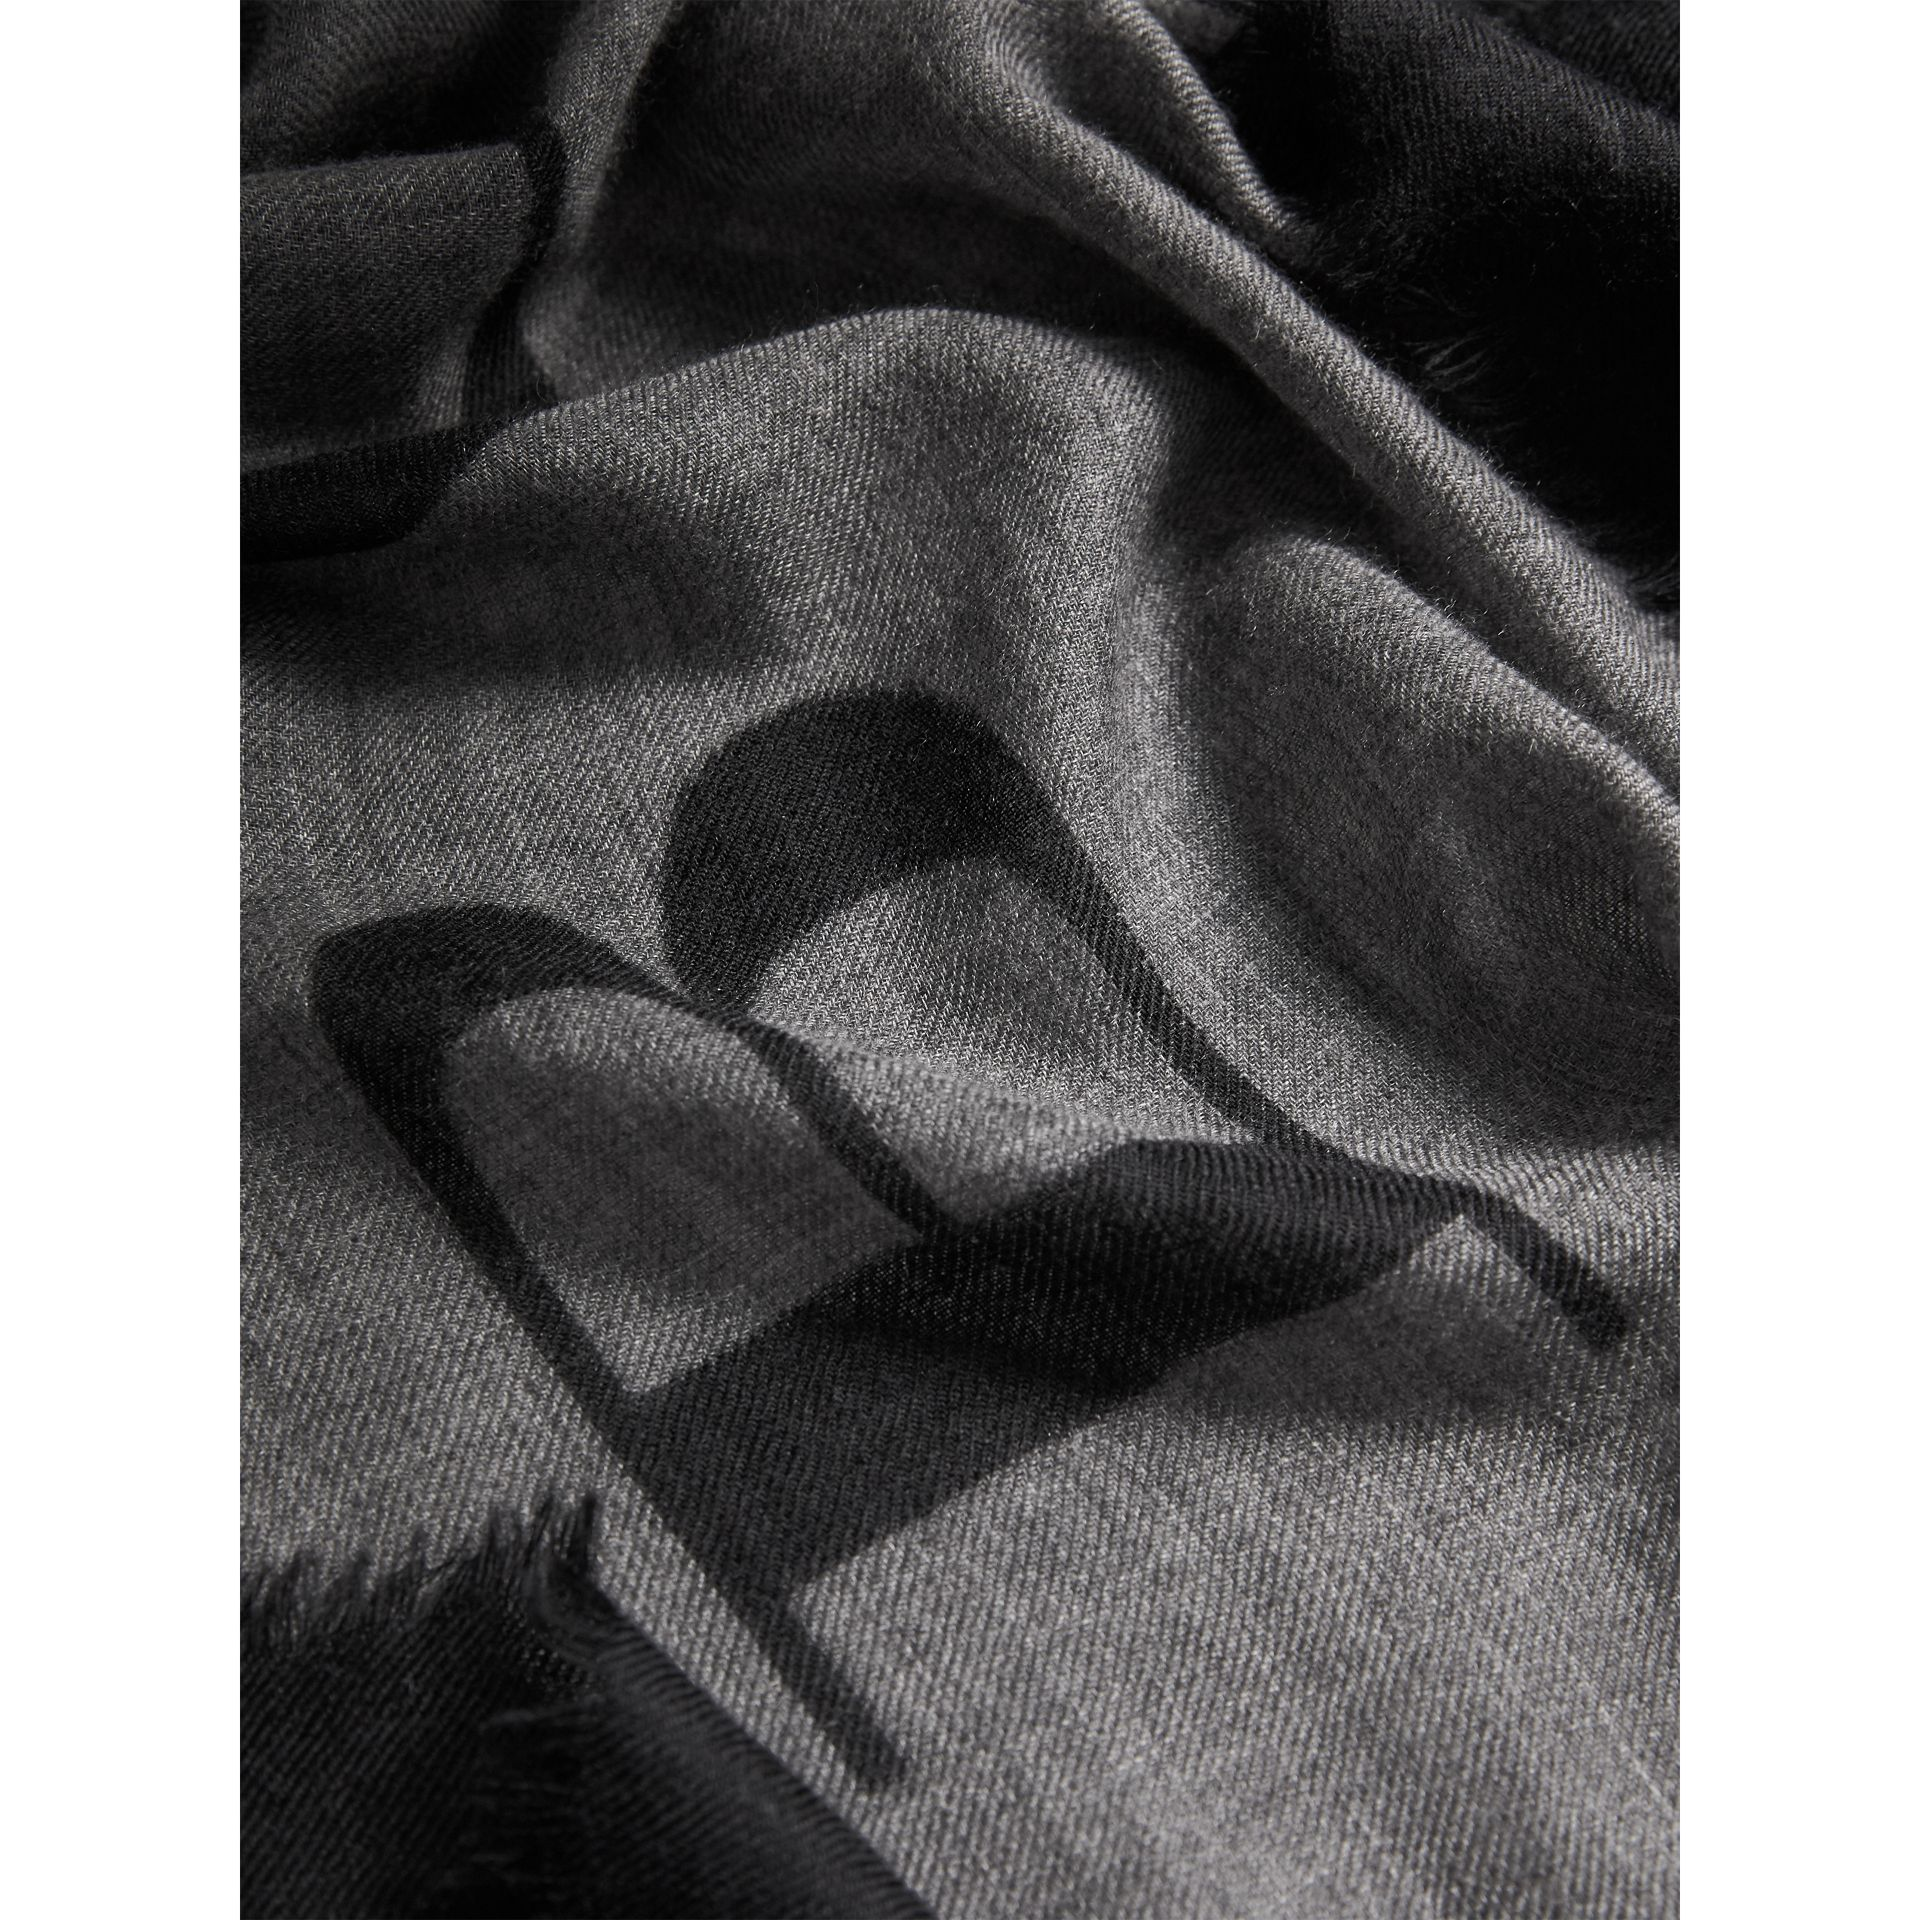 Graphic Print Motif  Lightweight Cashmere Scarf in Mid Grey - Women | Burberry - gallery image 2